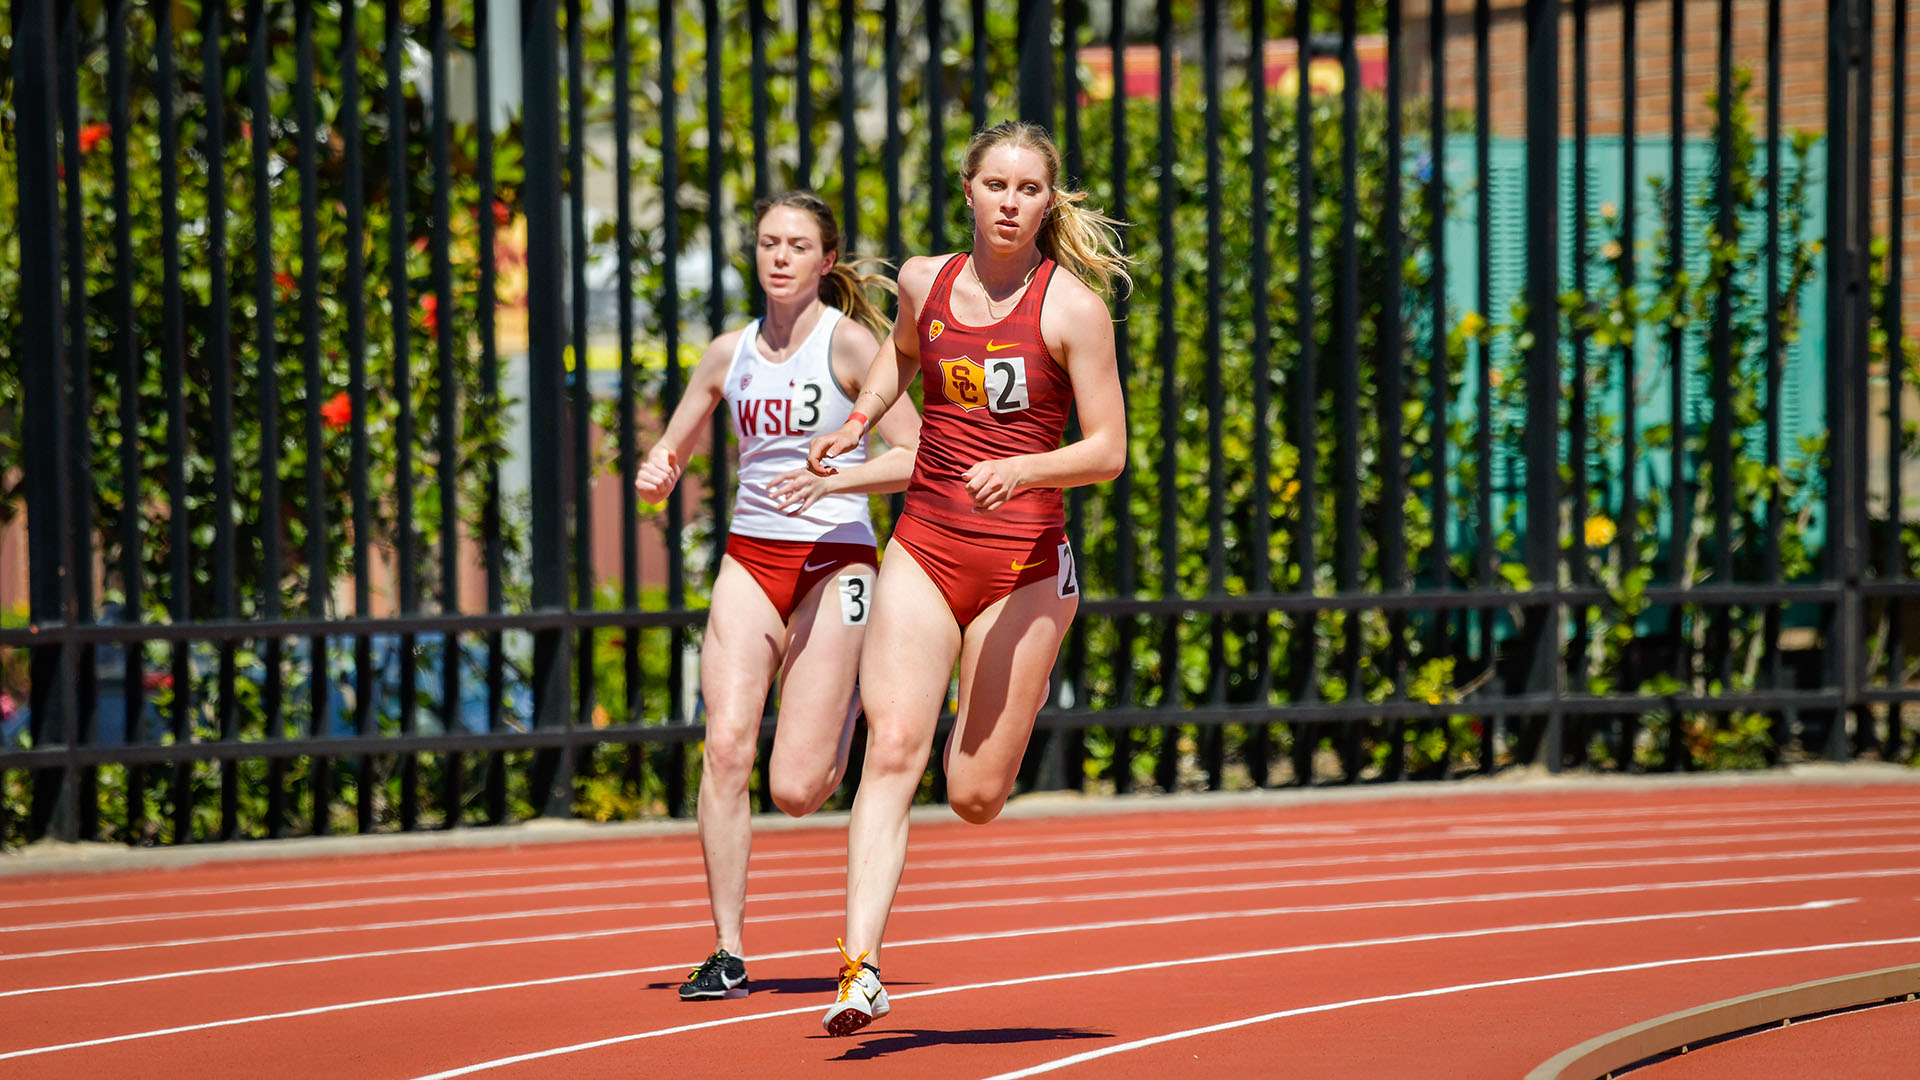 Jennifer Daly - Track & Field - USC Athletics